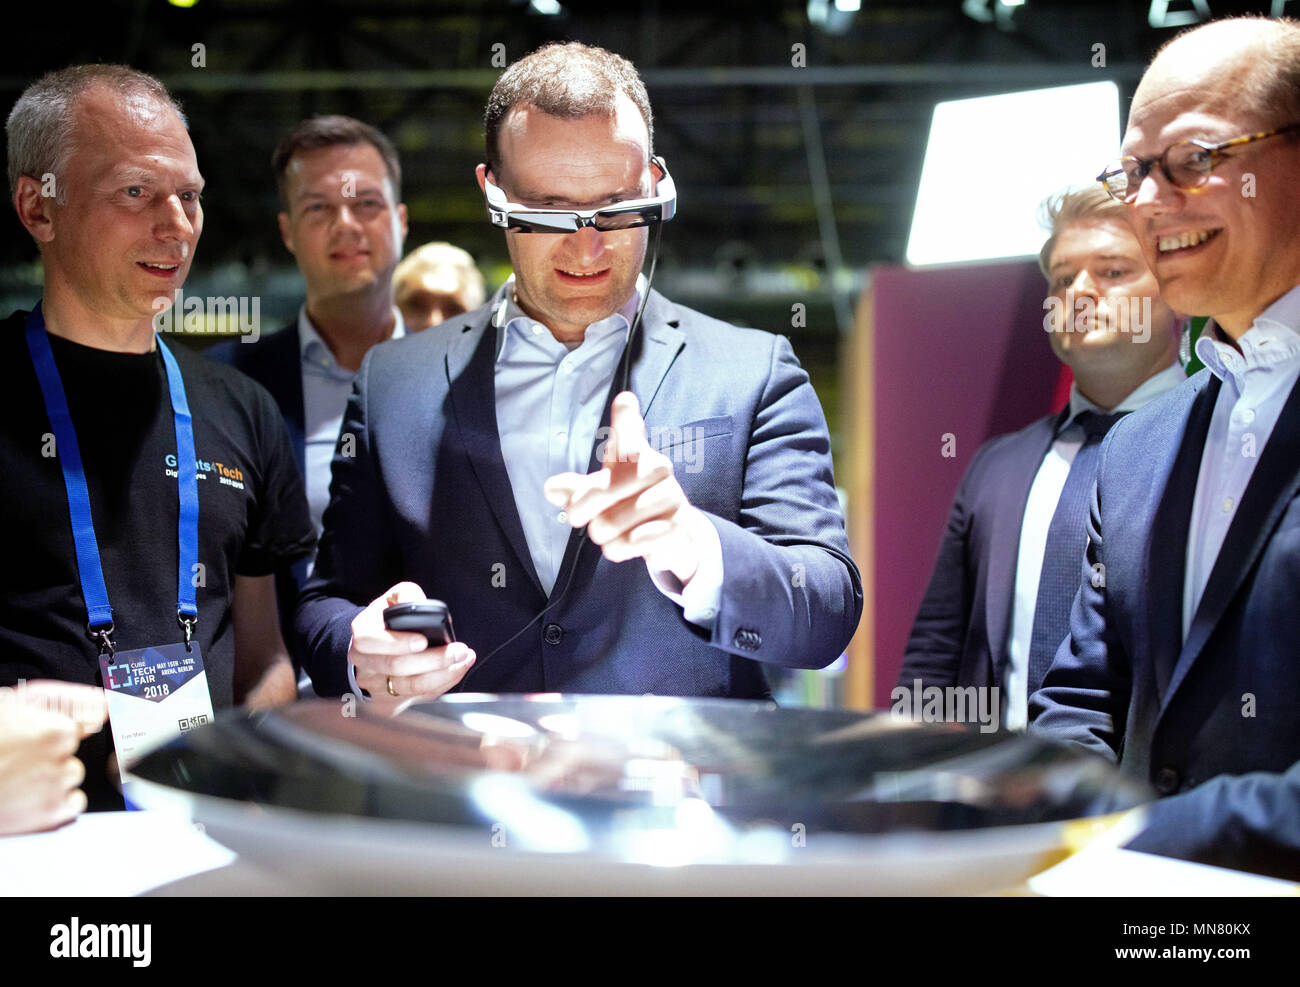 15 May 2018, Berlin, Germany: Jens Spahn of the Christian Democratic Union (CDU), Federal Health Minister, wears augmented reality glasses during a visit to the StartUp trade fair 'Cube Tech Fair'. Spahn participated in a discussion on 'Digitizing the Healthcare Industry through Blockchain and Artificial Intelligence.' Photo: Kay Nietfeld/dpa - Stock Image